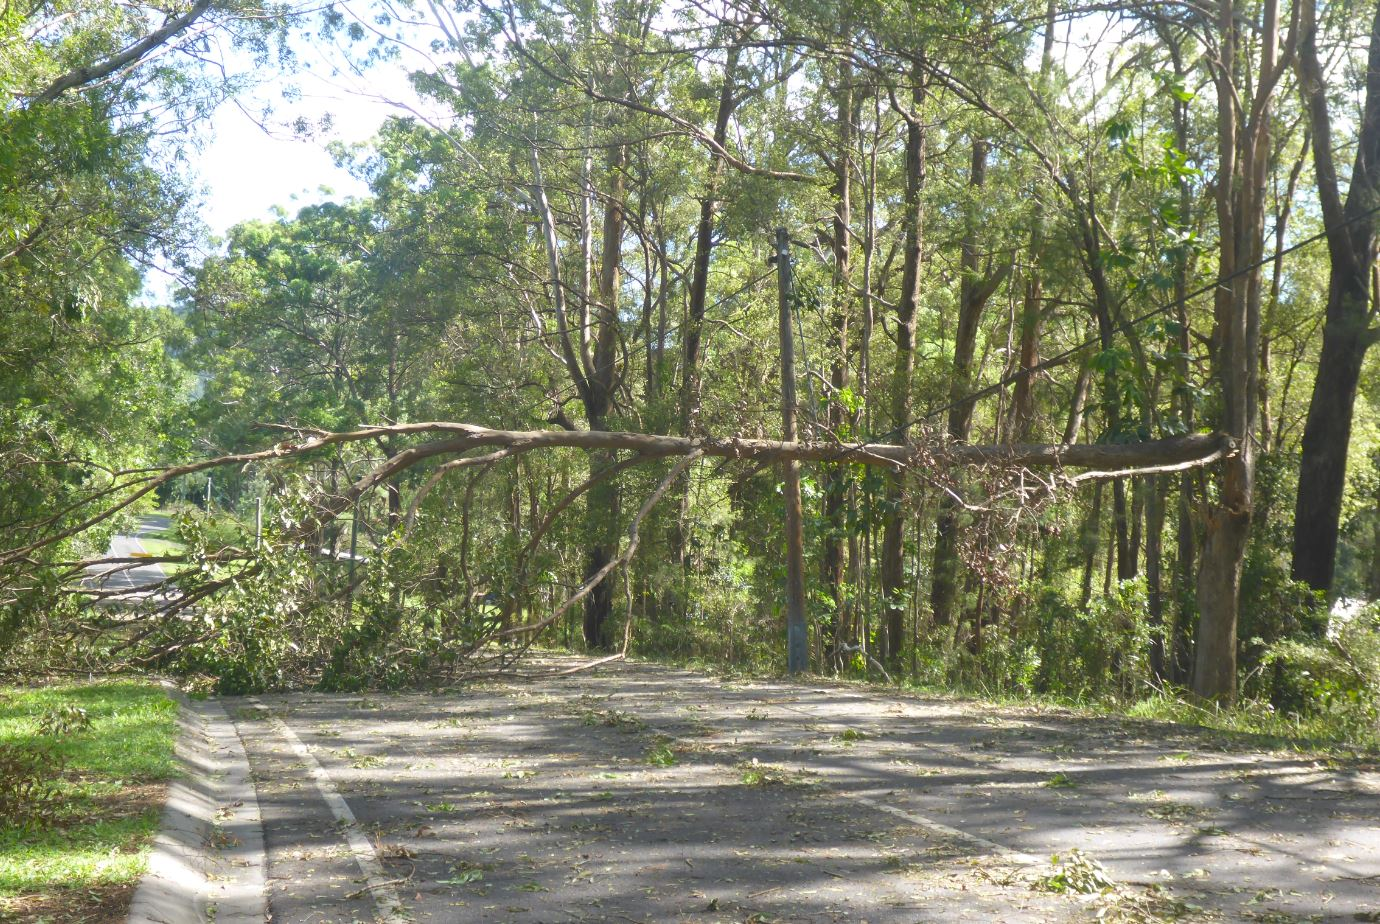 Widespread power outages plunged the Sunshine Coast into darkness last night, with tens of thousands still without power today.